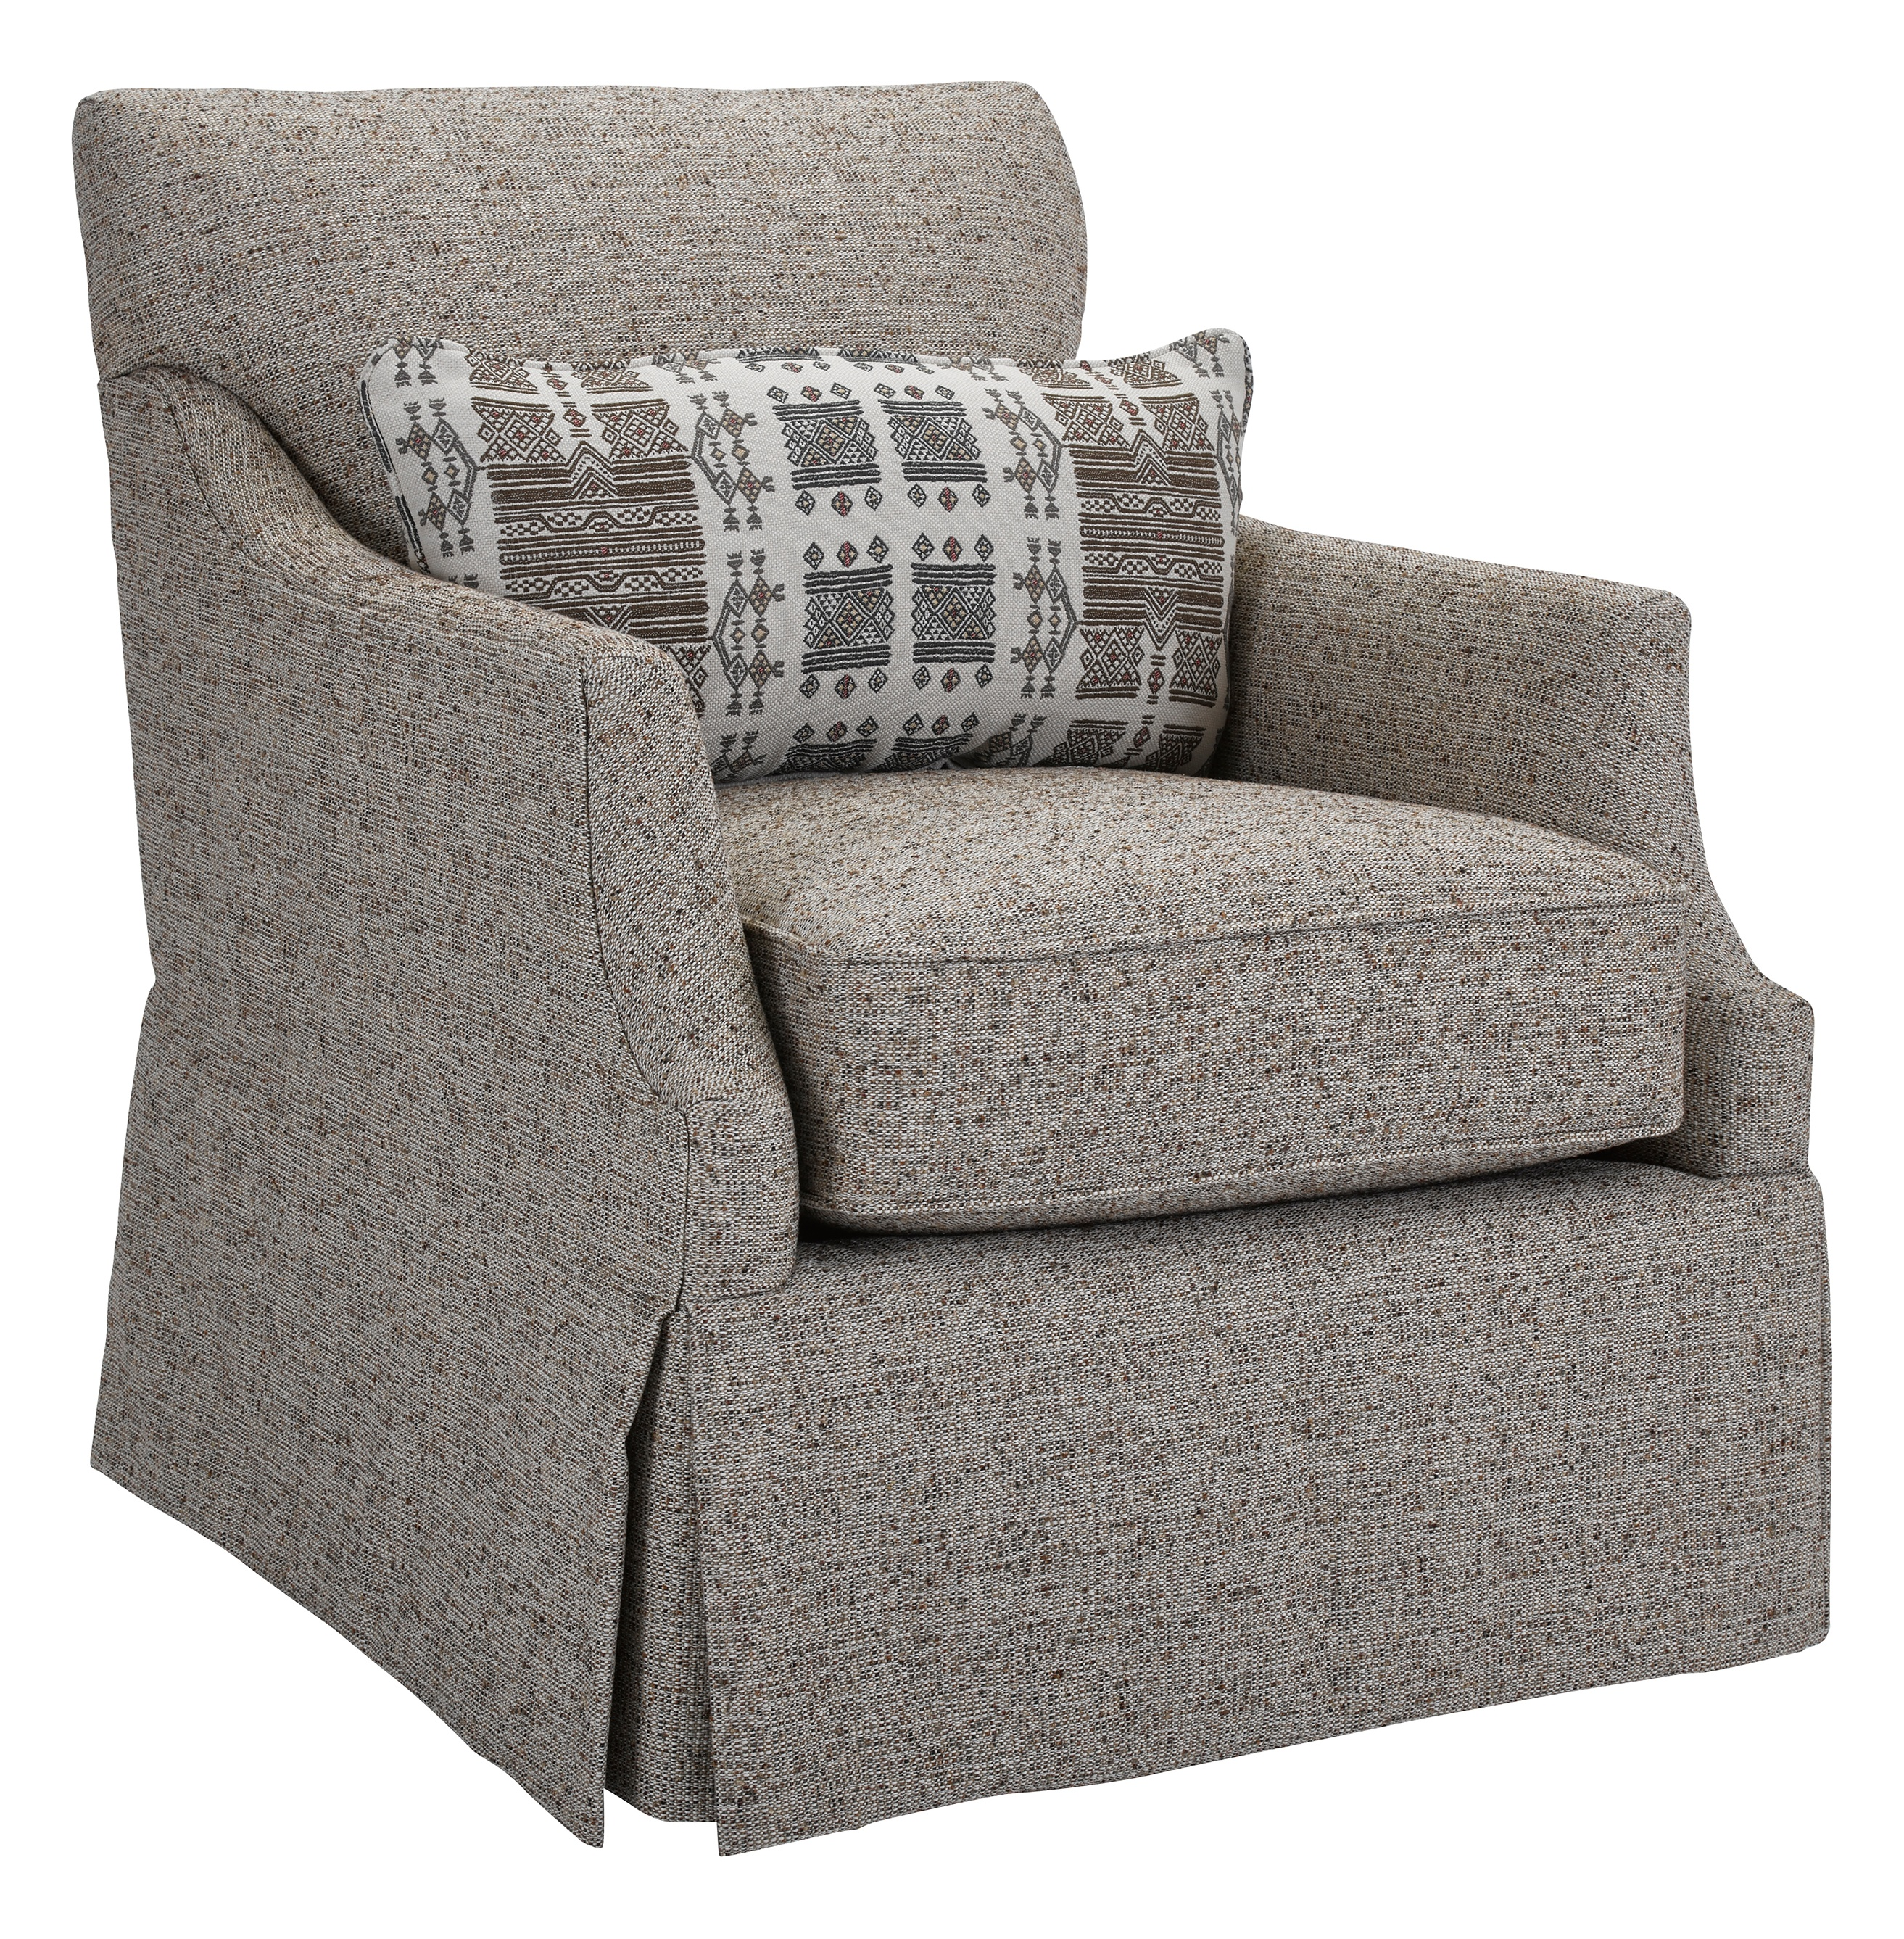 Super Yves 9054 8 Swivel Rocker 9054 8 Sofas And Sectionals Pdpeps Interior Chair Design Pdpepsorg